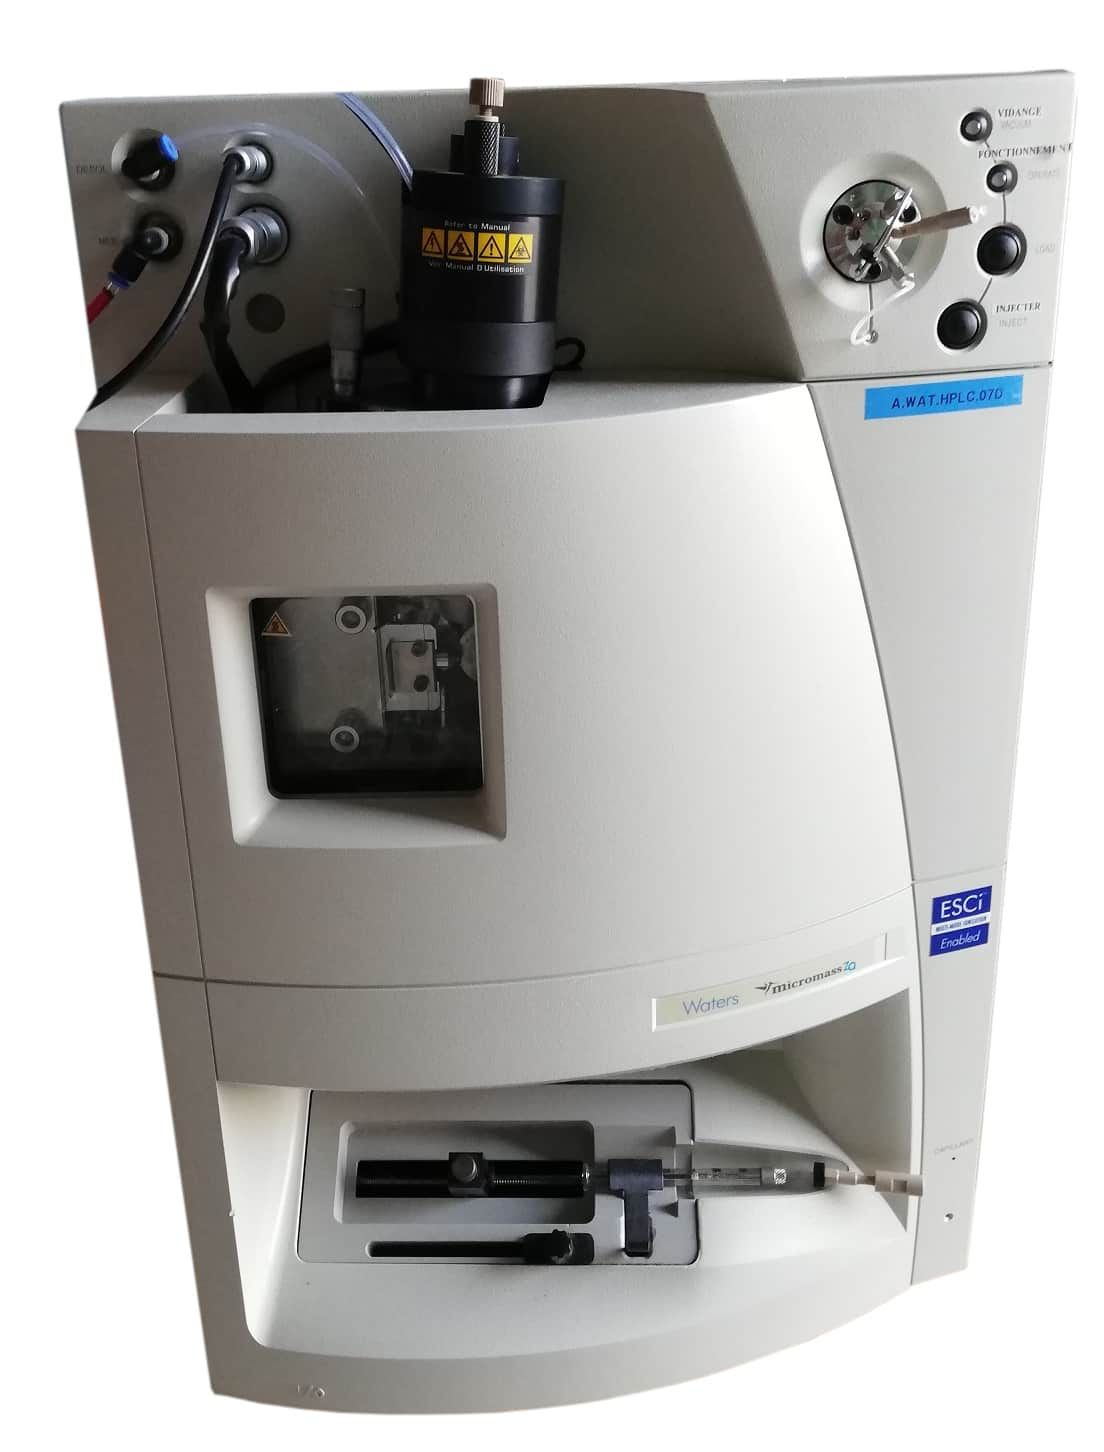 Waters Micromass ZQ 2000 Spectrophotometer System with Pump